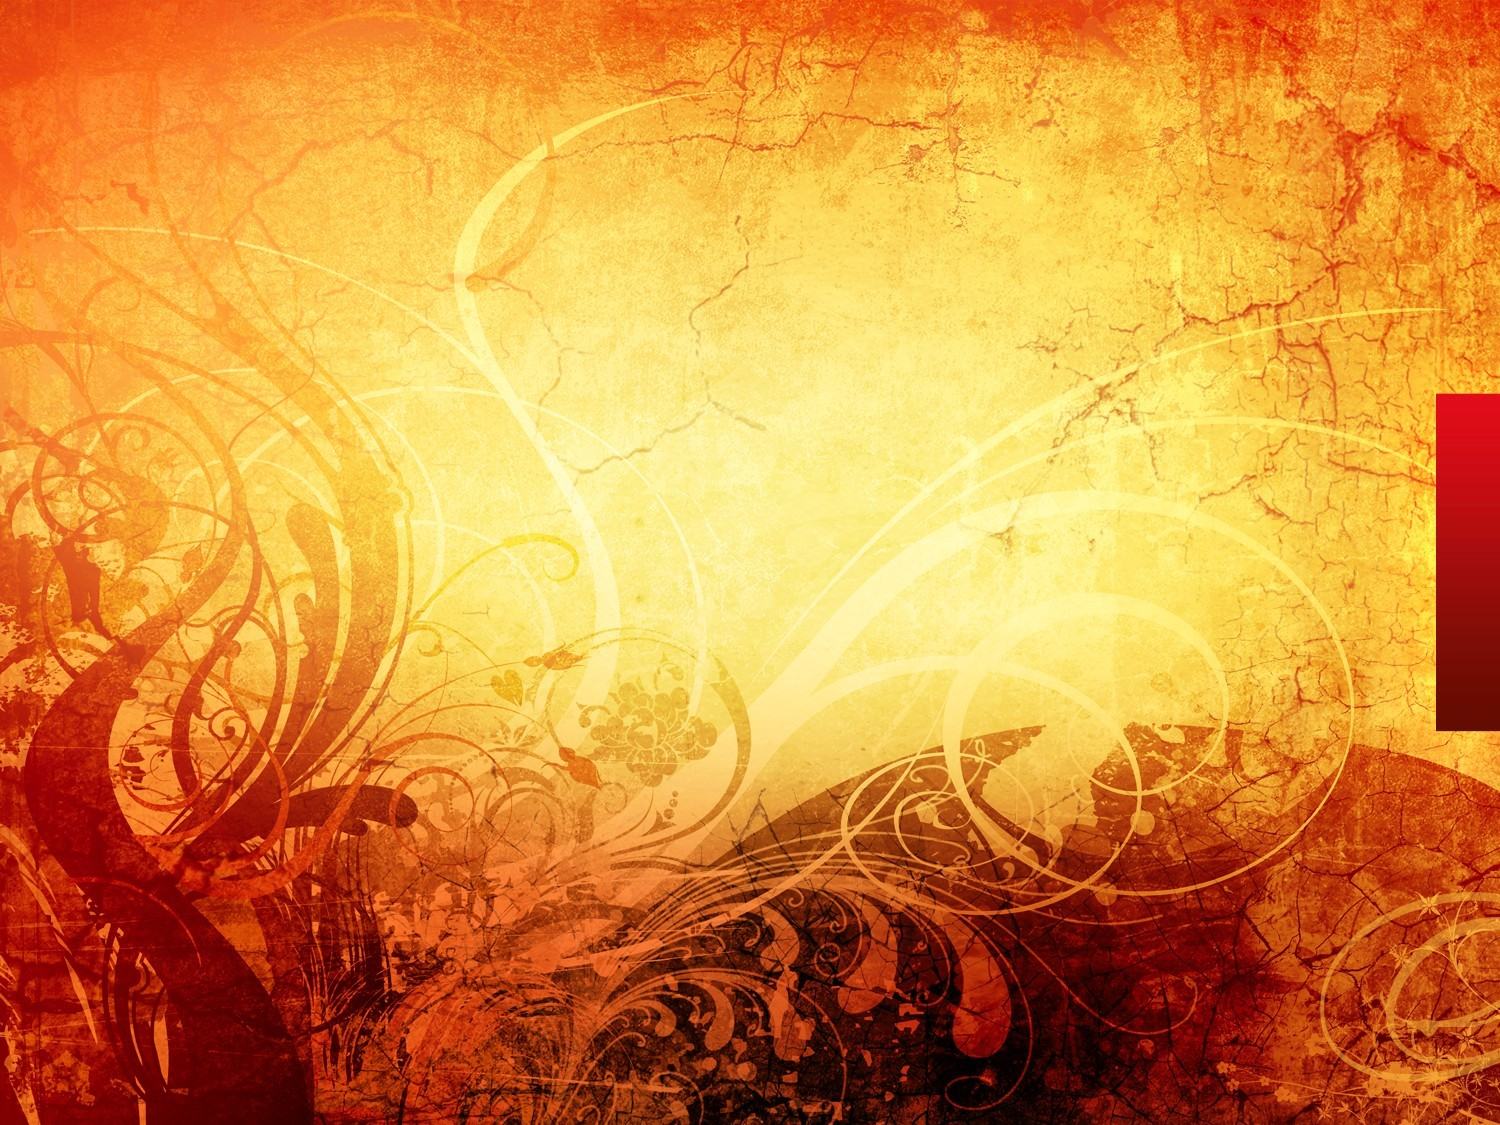 Christian Praise And Worship Backgrounds Swirling vines worship 1500x1125